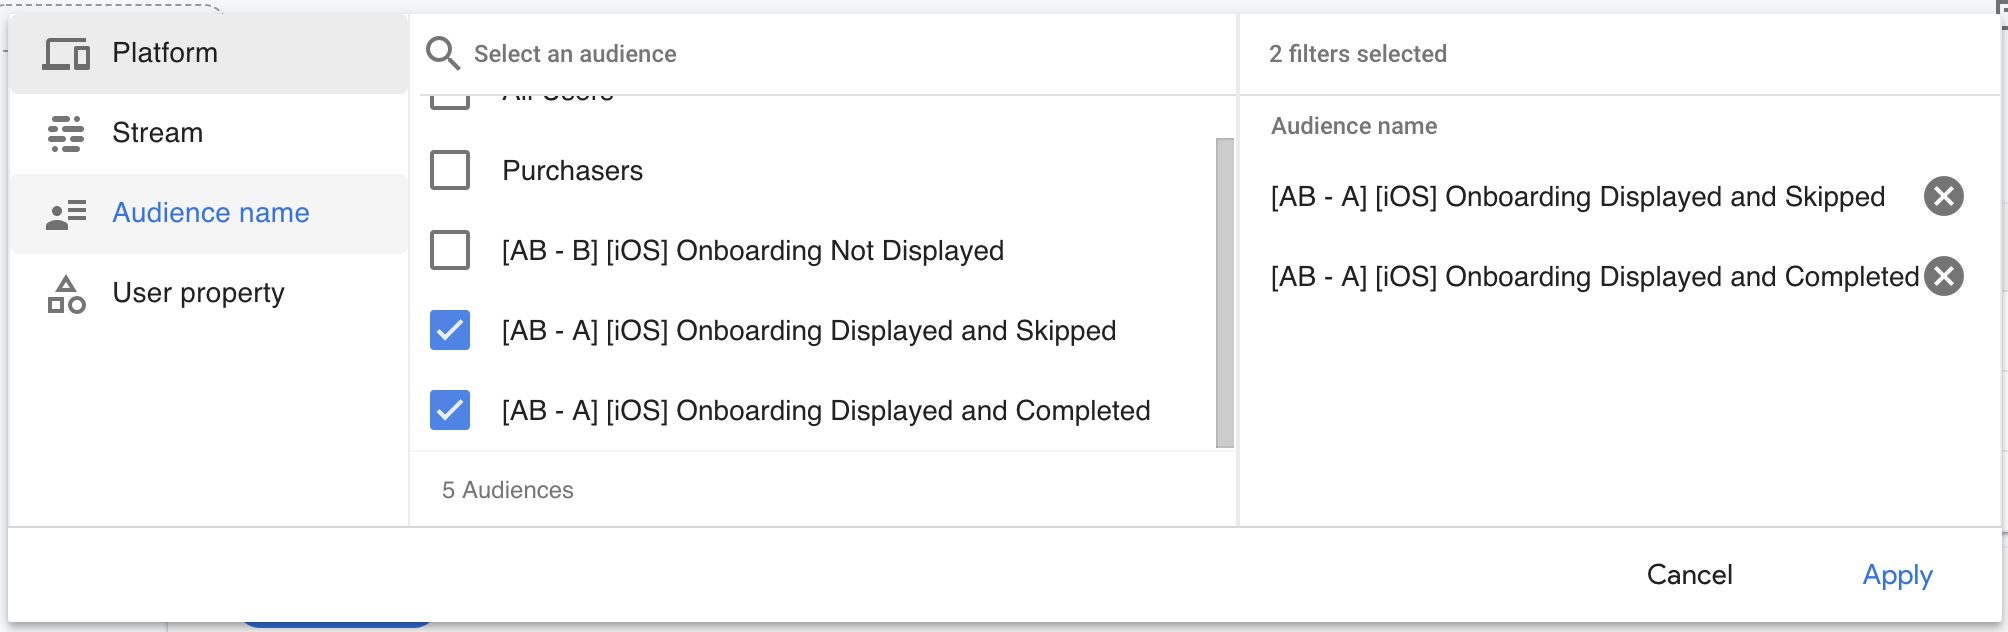 Filtering events by audience in Firebase